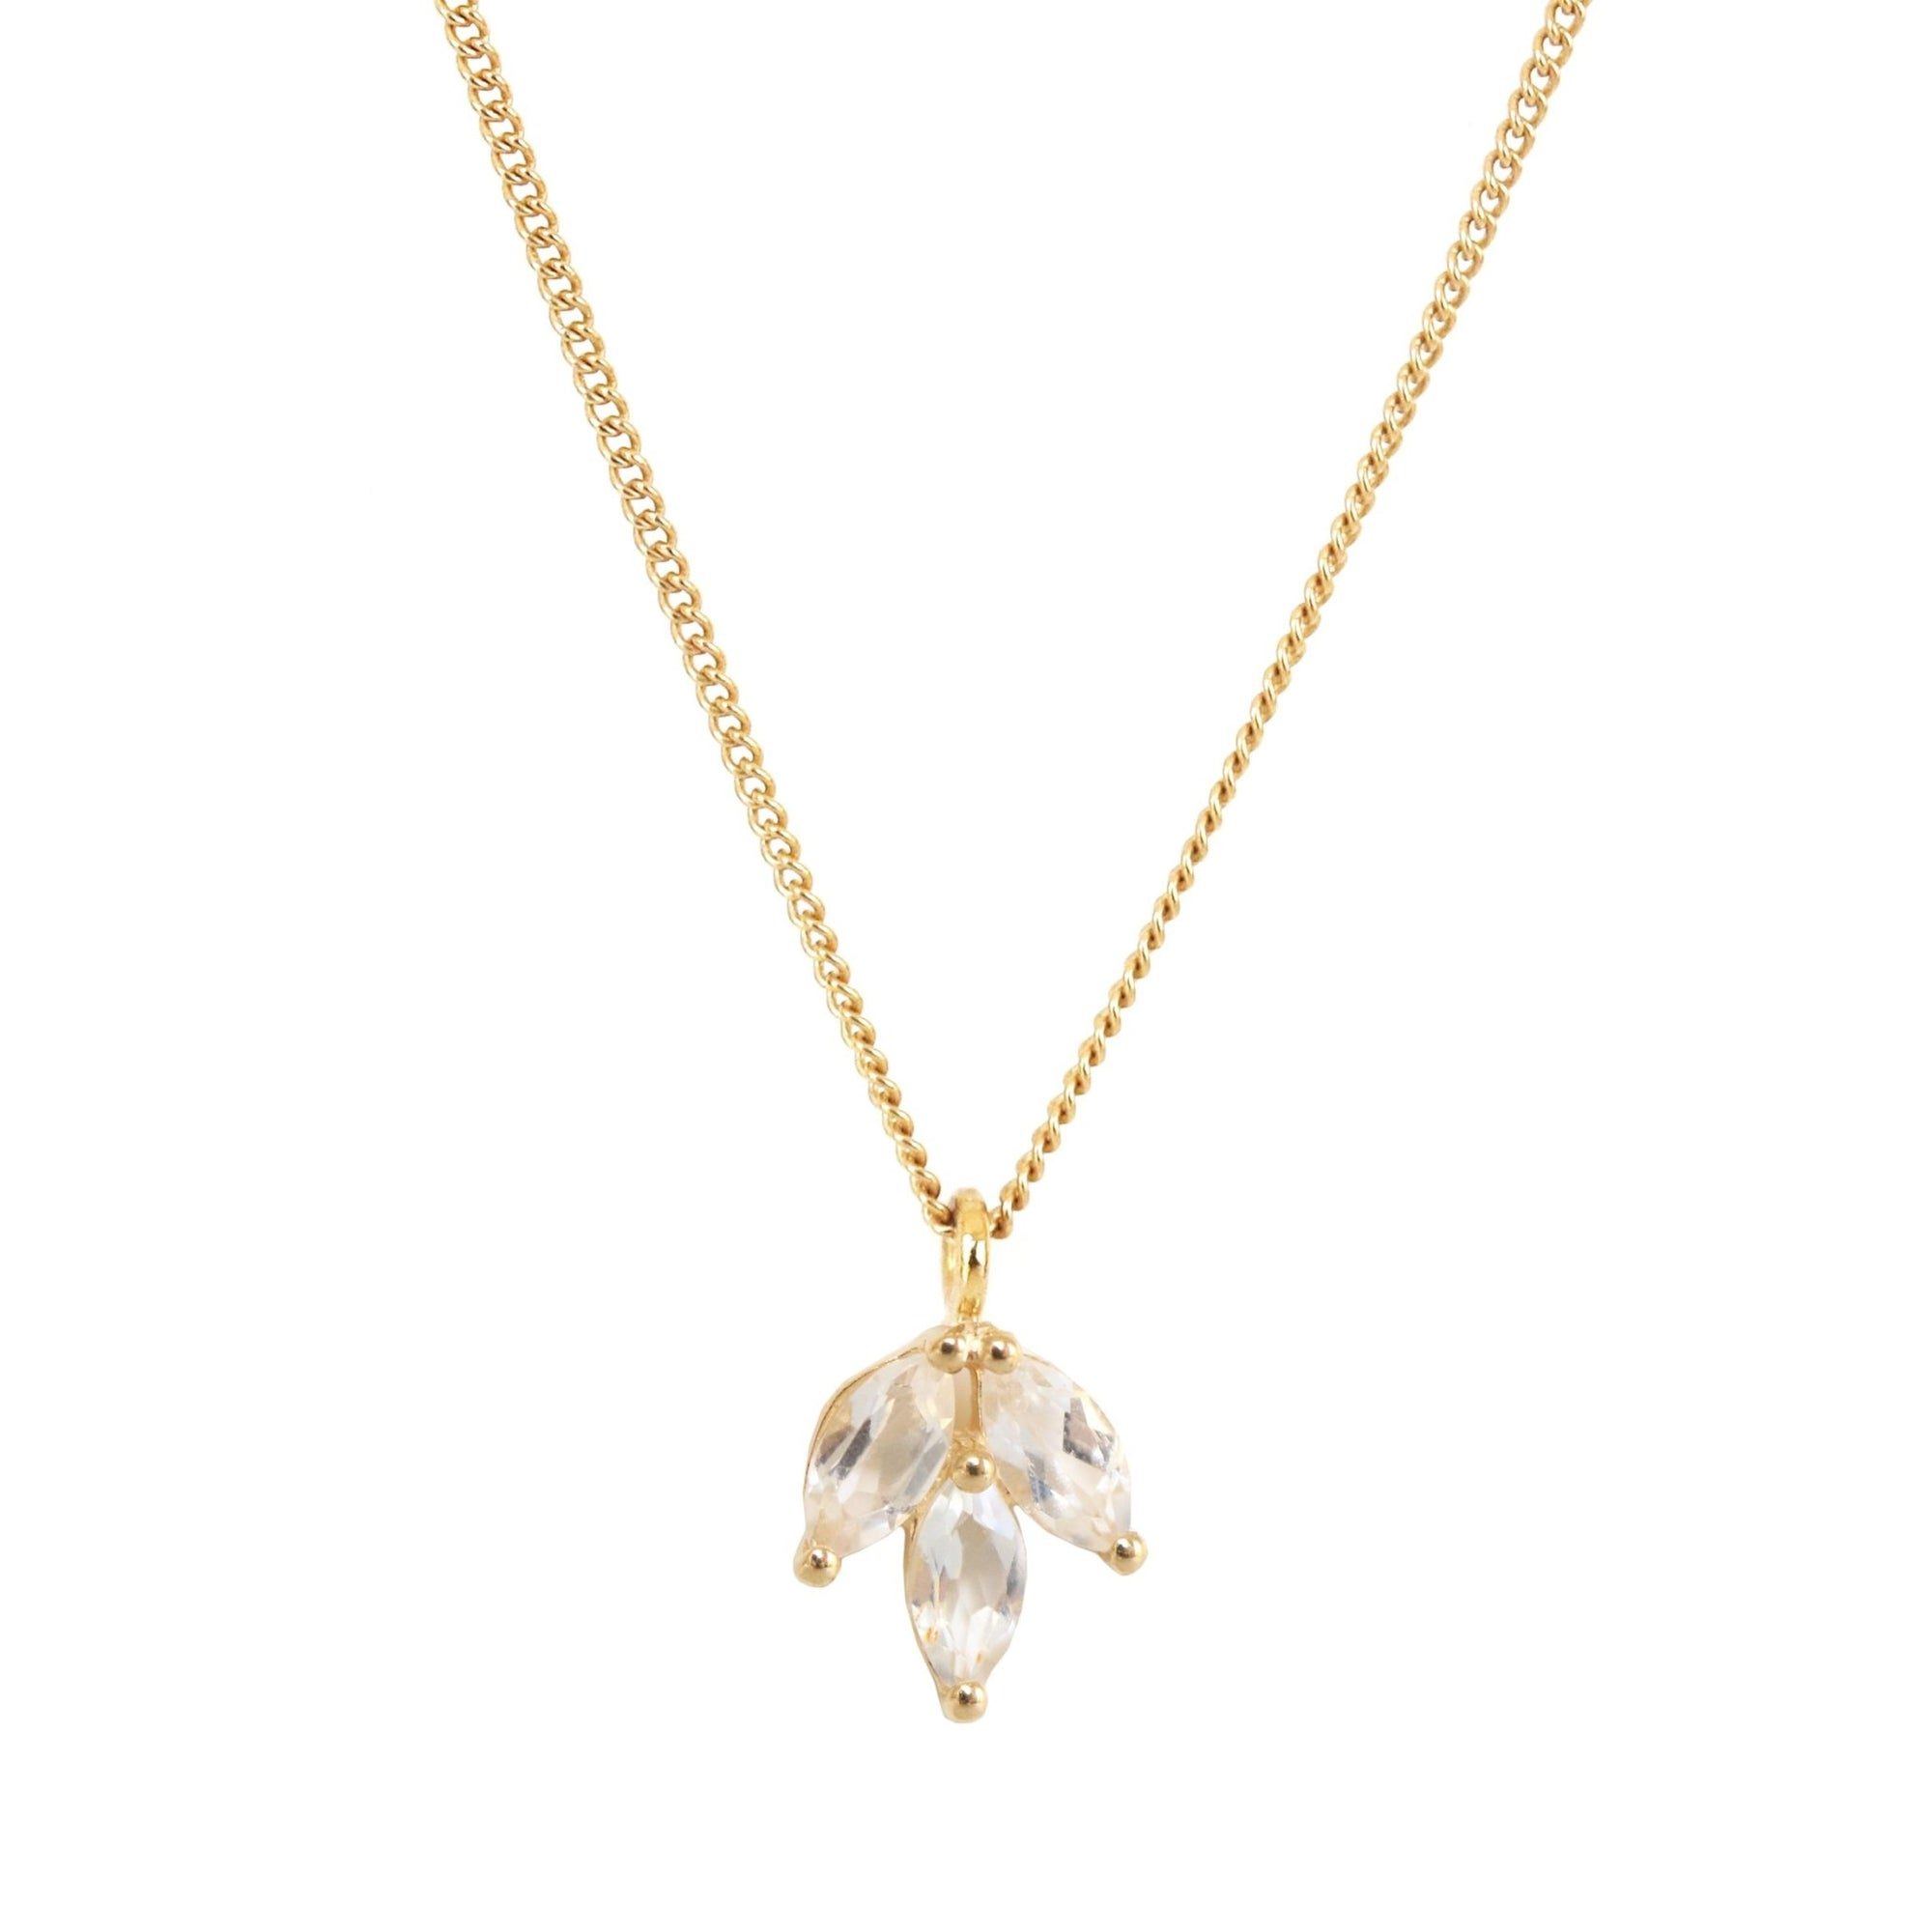 FRAICHE INSPIRE CRYSTAL OLIVE LEAF NECKLACE - WHITE TOPAZ & GOLD - SO PRETTY CARA COTTER